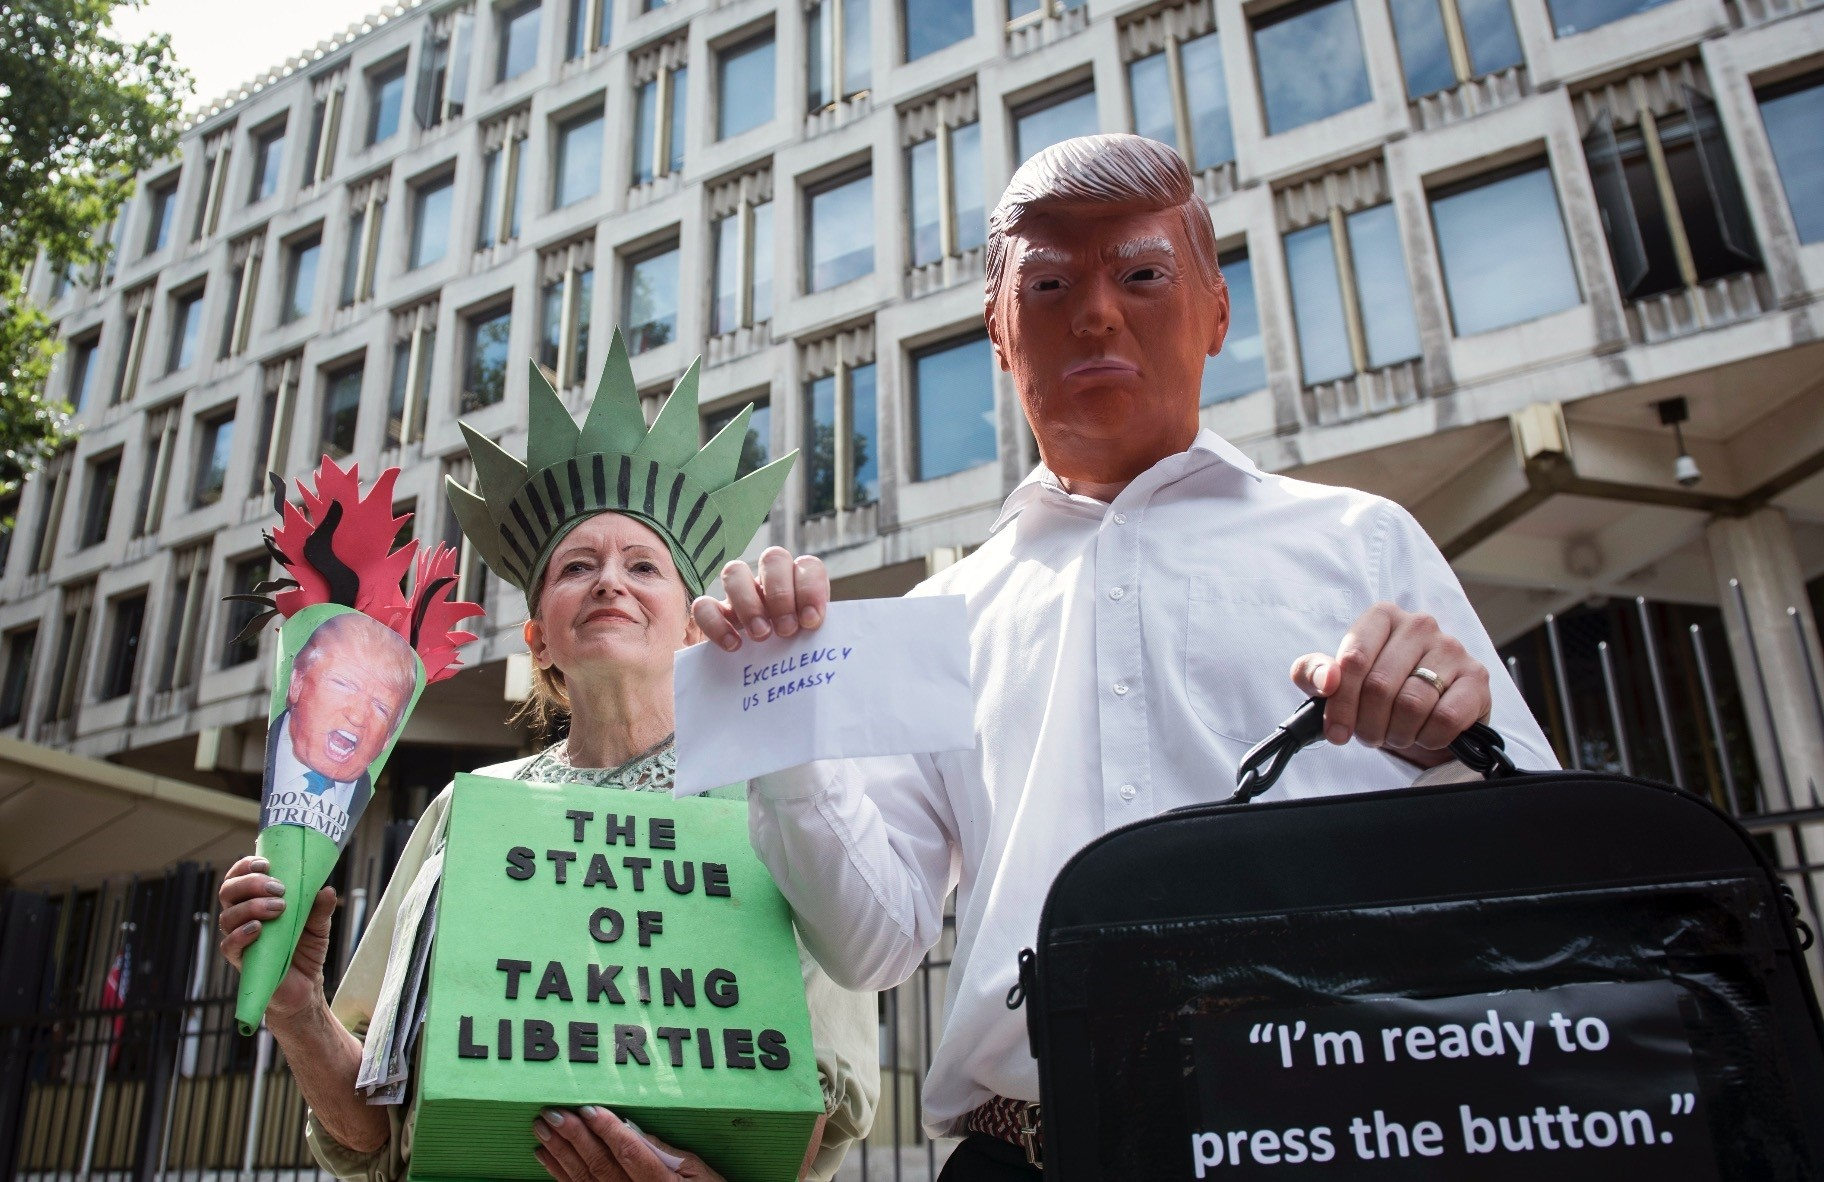 Campaigners take part in a protest against the nuclear tension between the U.S. and North Korea, outside the U.S. Embassy in Grosvenor Square, central London,  Aug. 11.